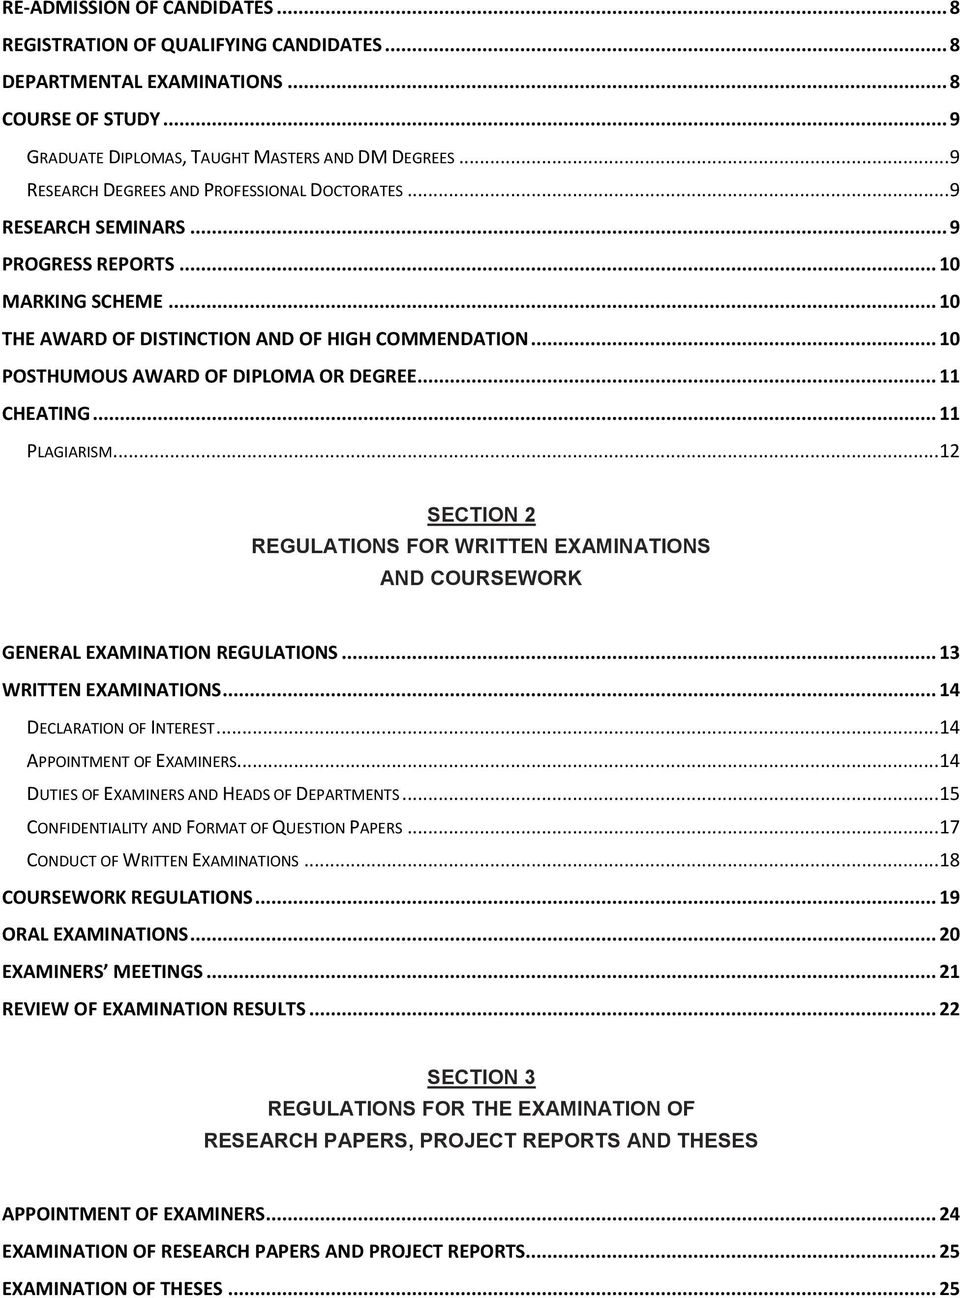 .. 10 POSTHUMOUS AWARD OF DIPLOMA OR DEGREE... 11 CHEATING... 11 PLAGIARISM... 12 SECTION 2 REGULATIONS FOR WRITTEN EXAMINATIONS AND COURSEWORK GENERAL EXAMINATION REGULATIONS.